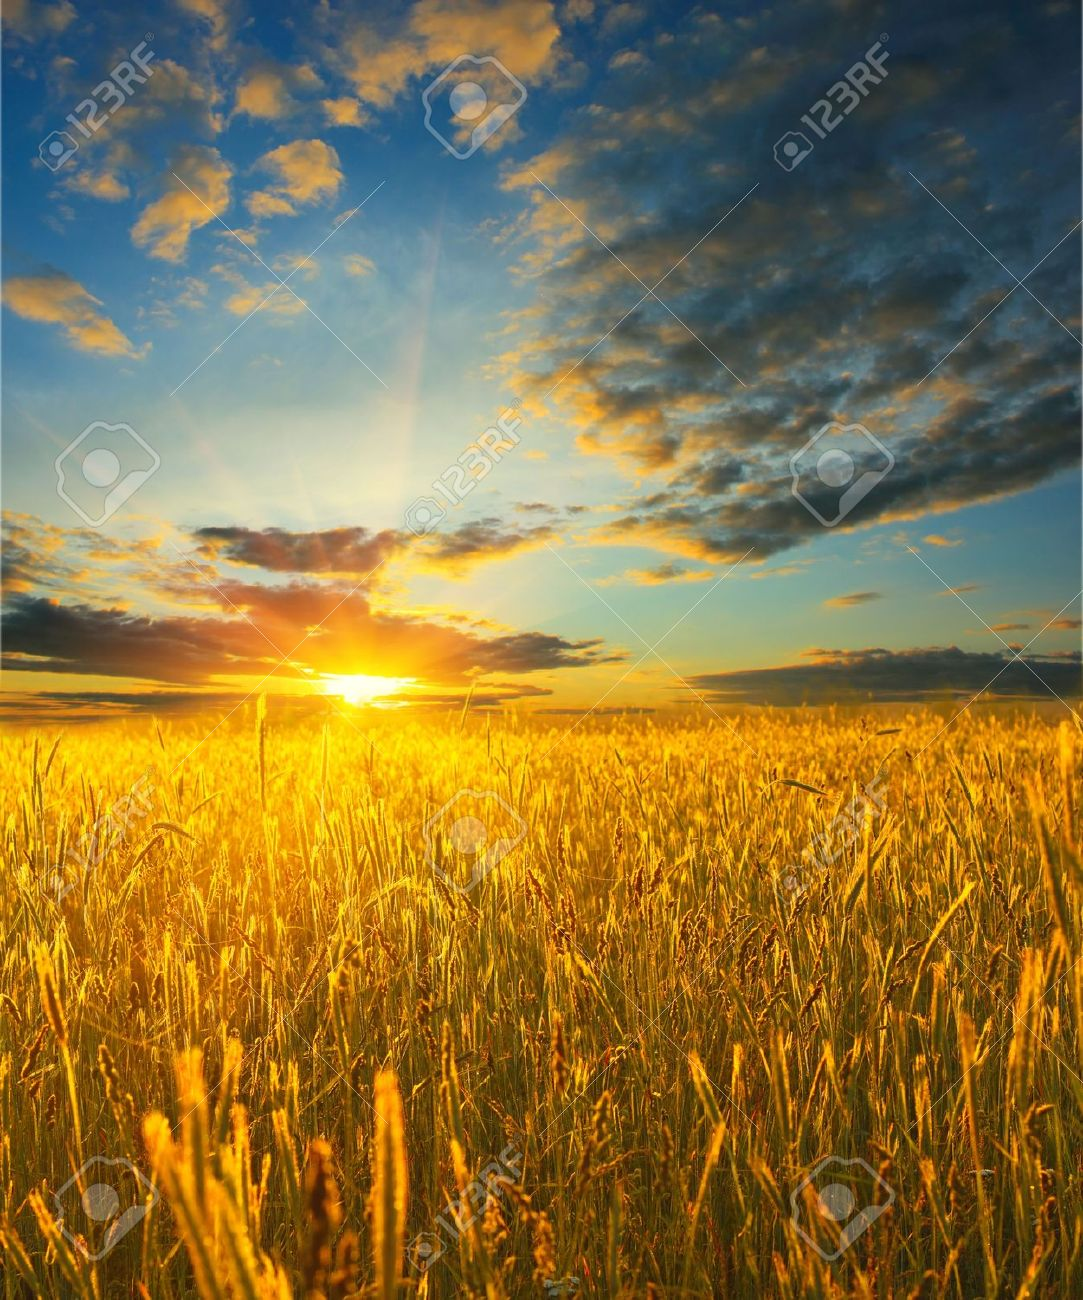 sunrise over field with wheat stock photo picture and royalty free